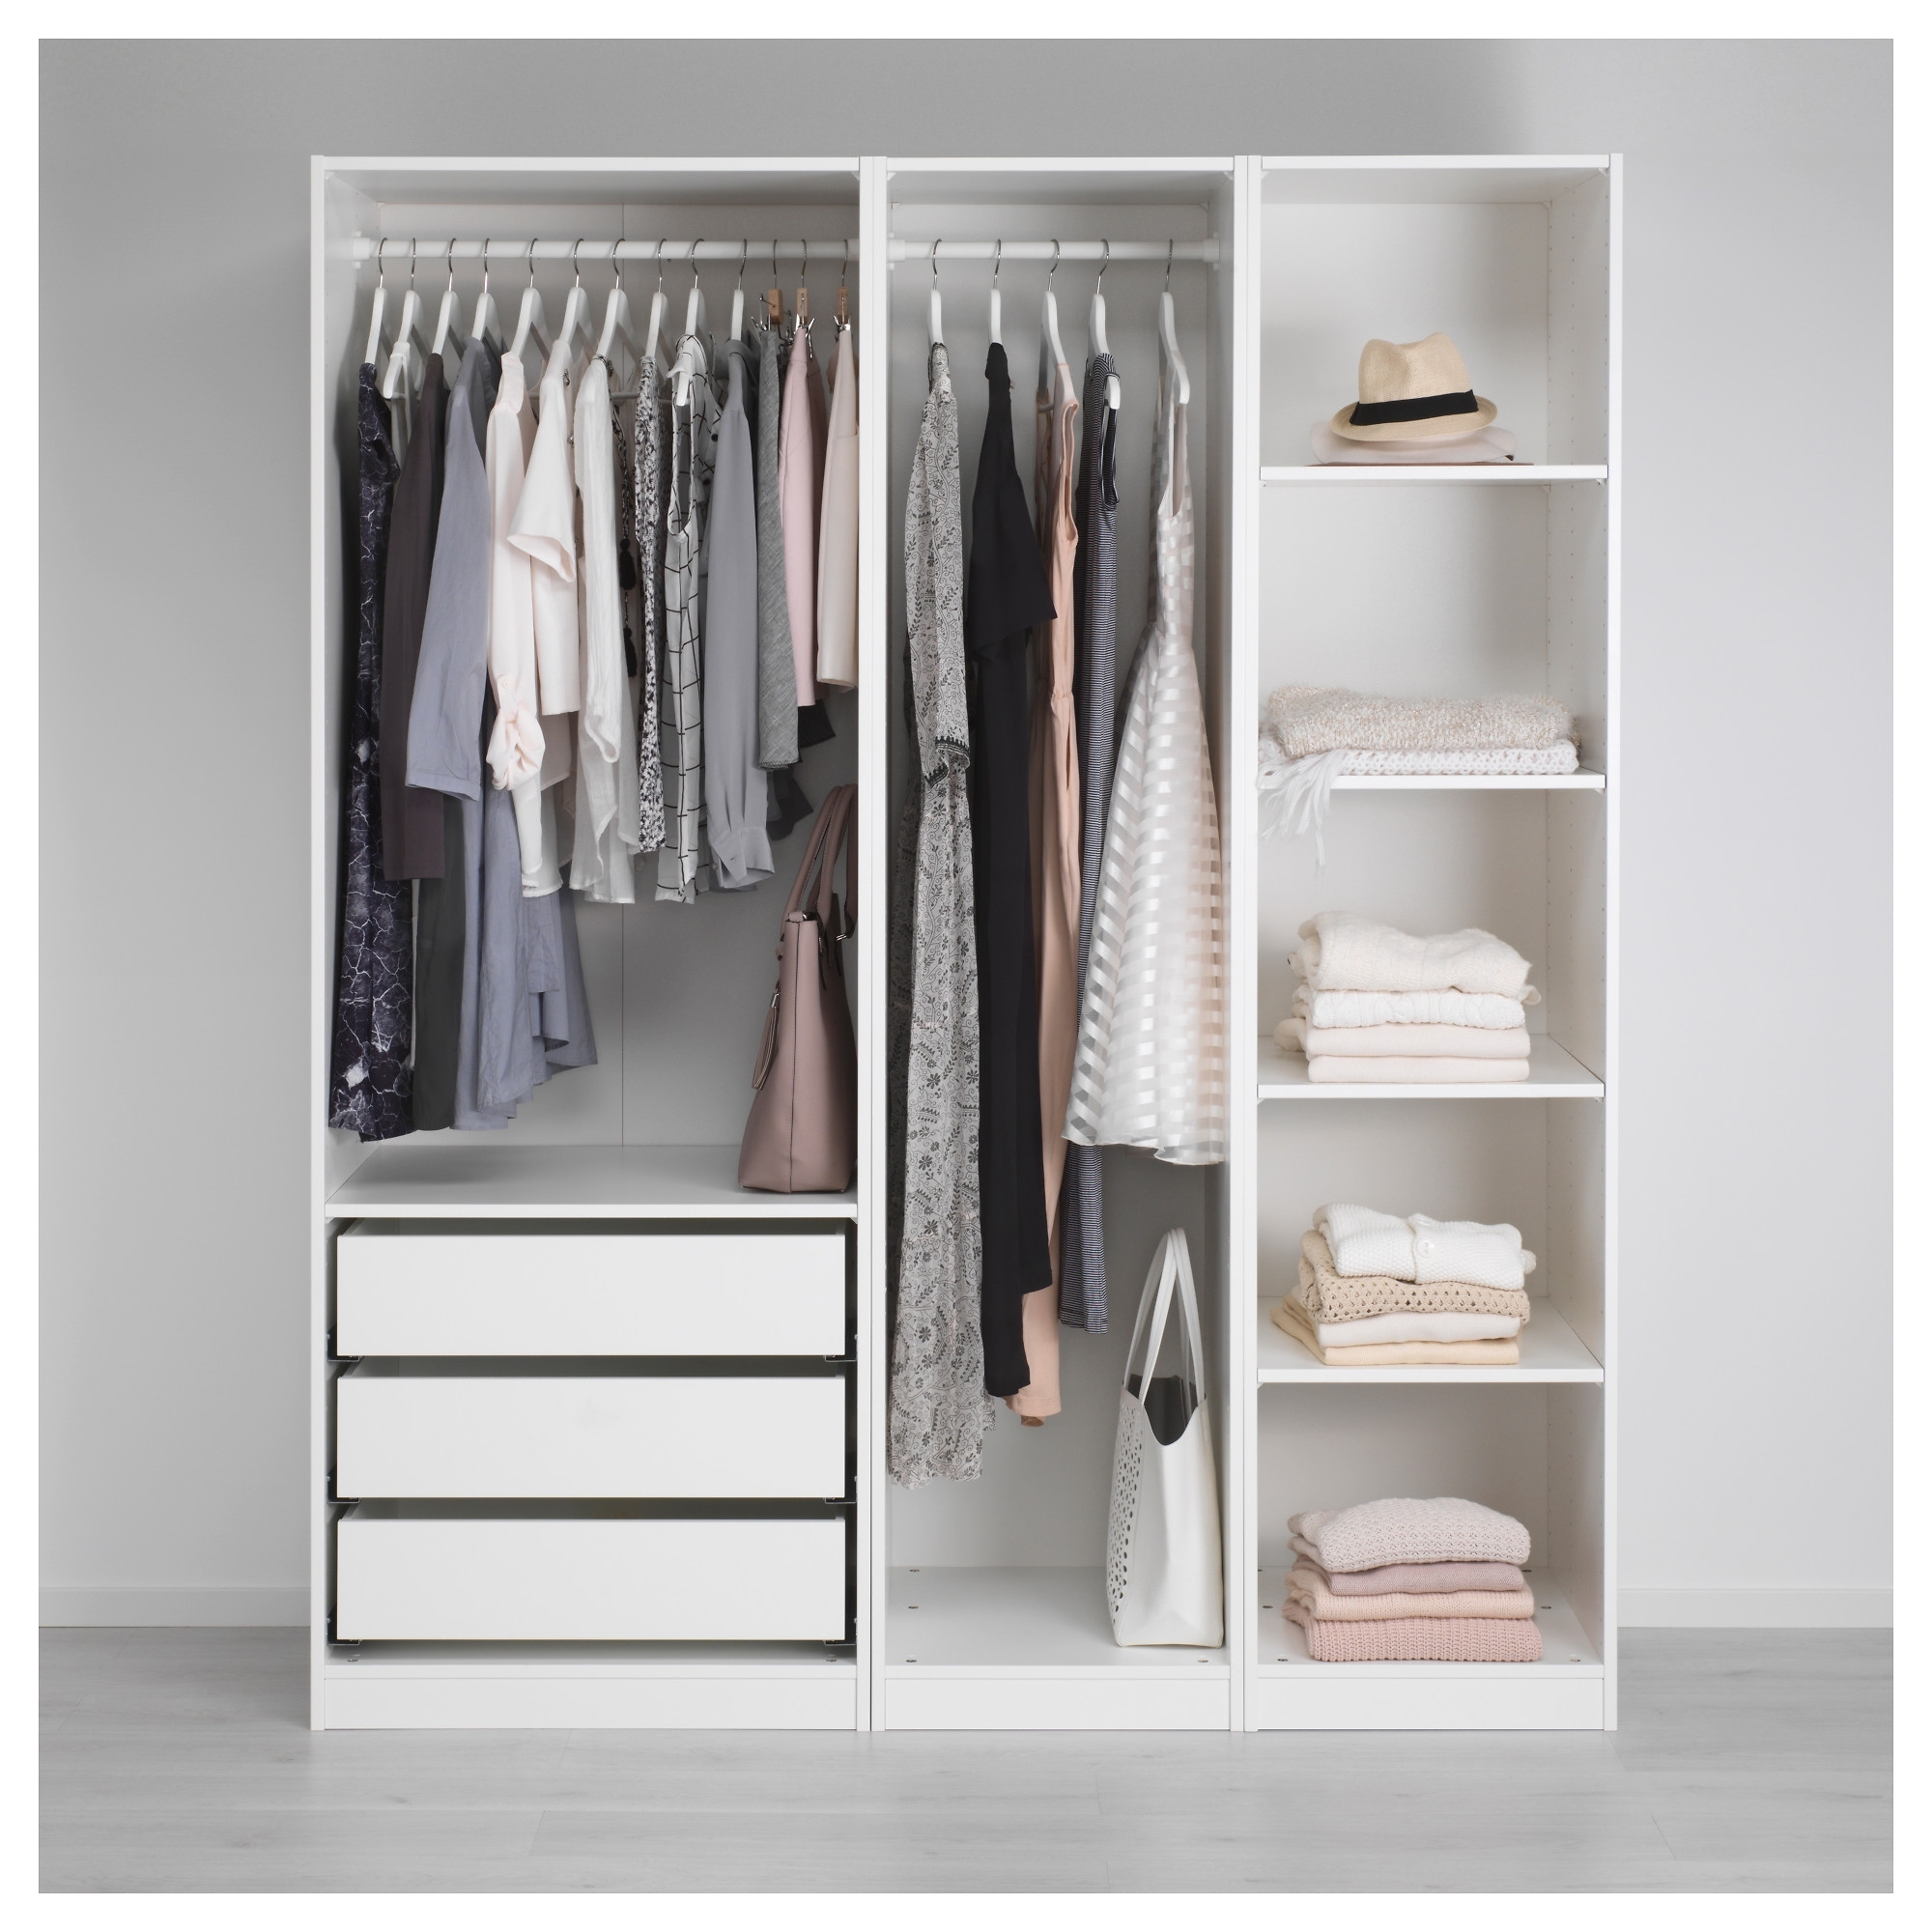 15 ideas of wardrobes drawers and shelves ikea. Black Bedroom Furniture Sets. Home Design Ideas